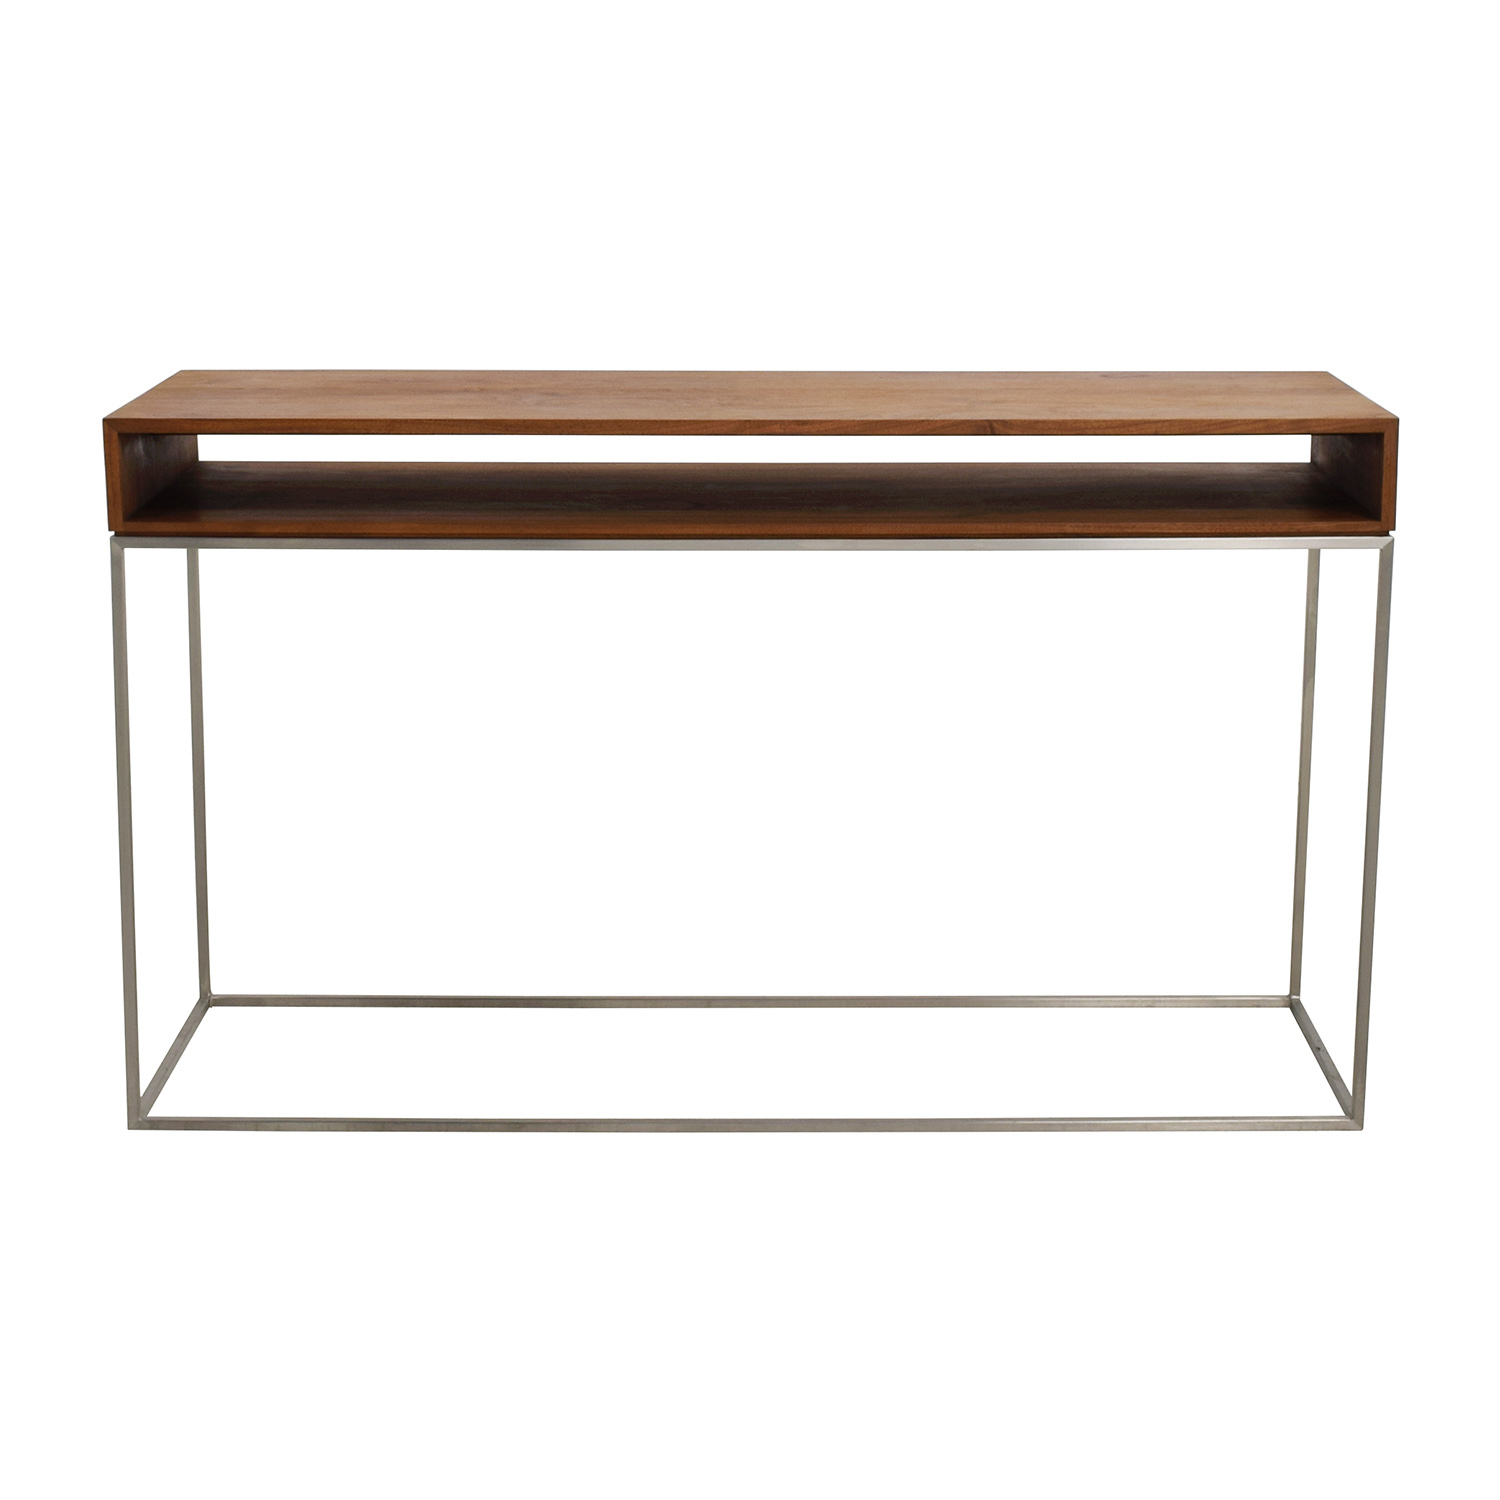 70% Off   Cb2 Cb2 Wood And Metal Frame Console Table / Tables Inside Frame Console Tables (Photo 2 of 30)